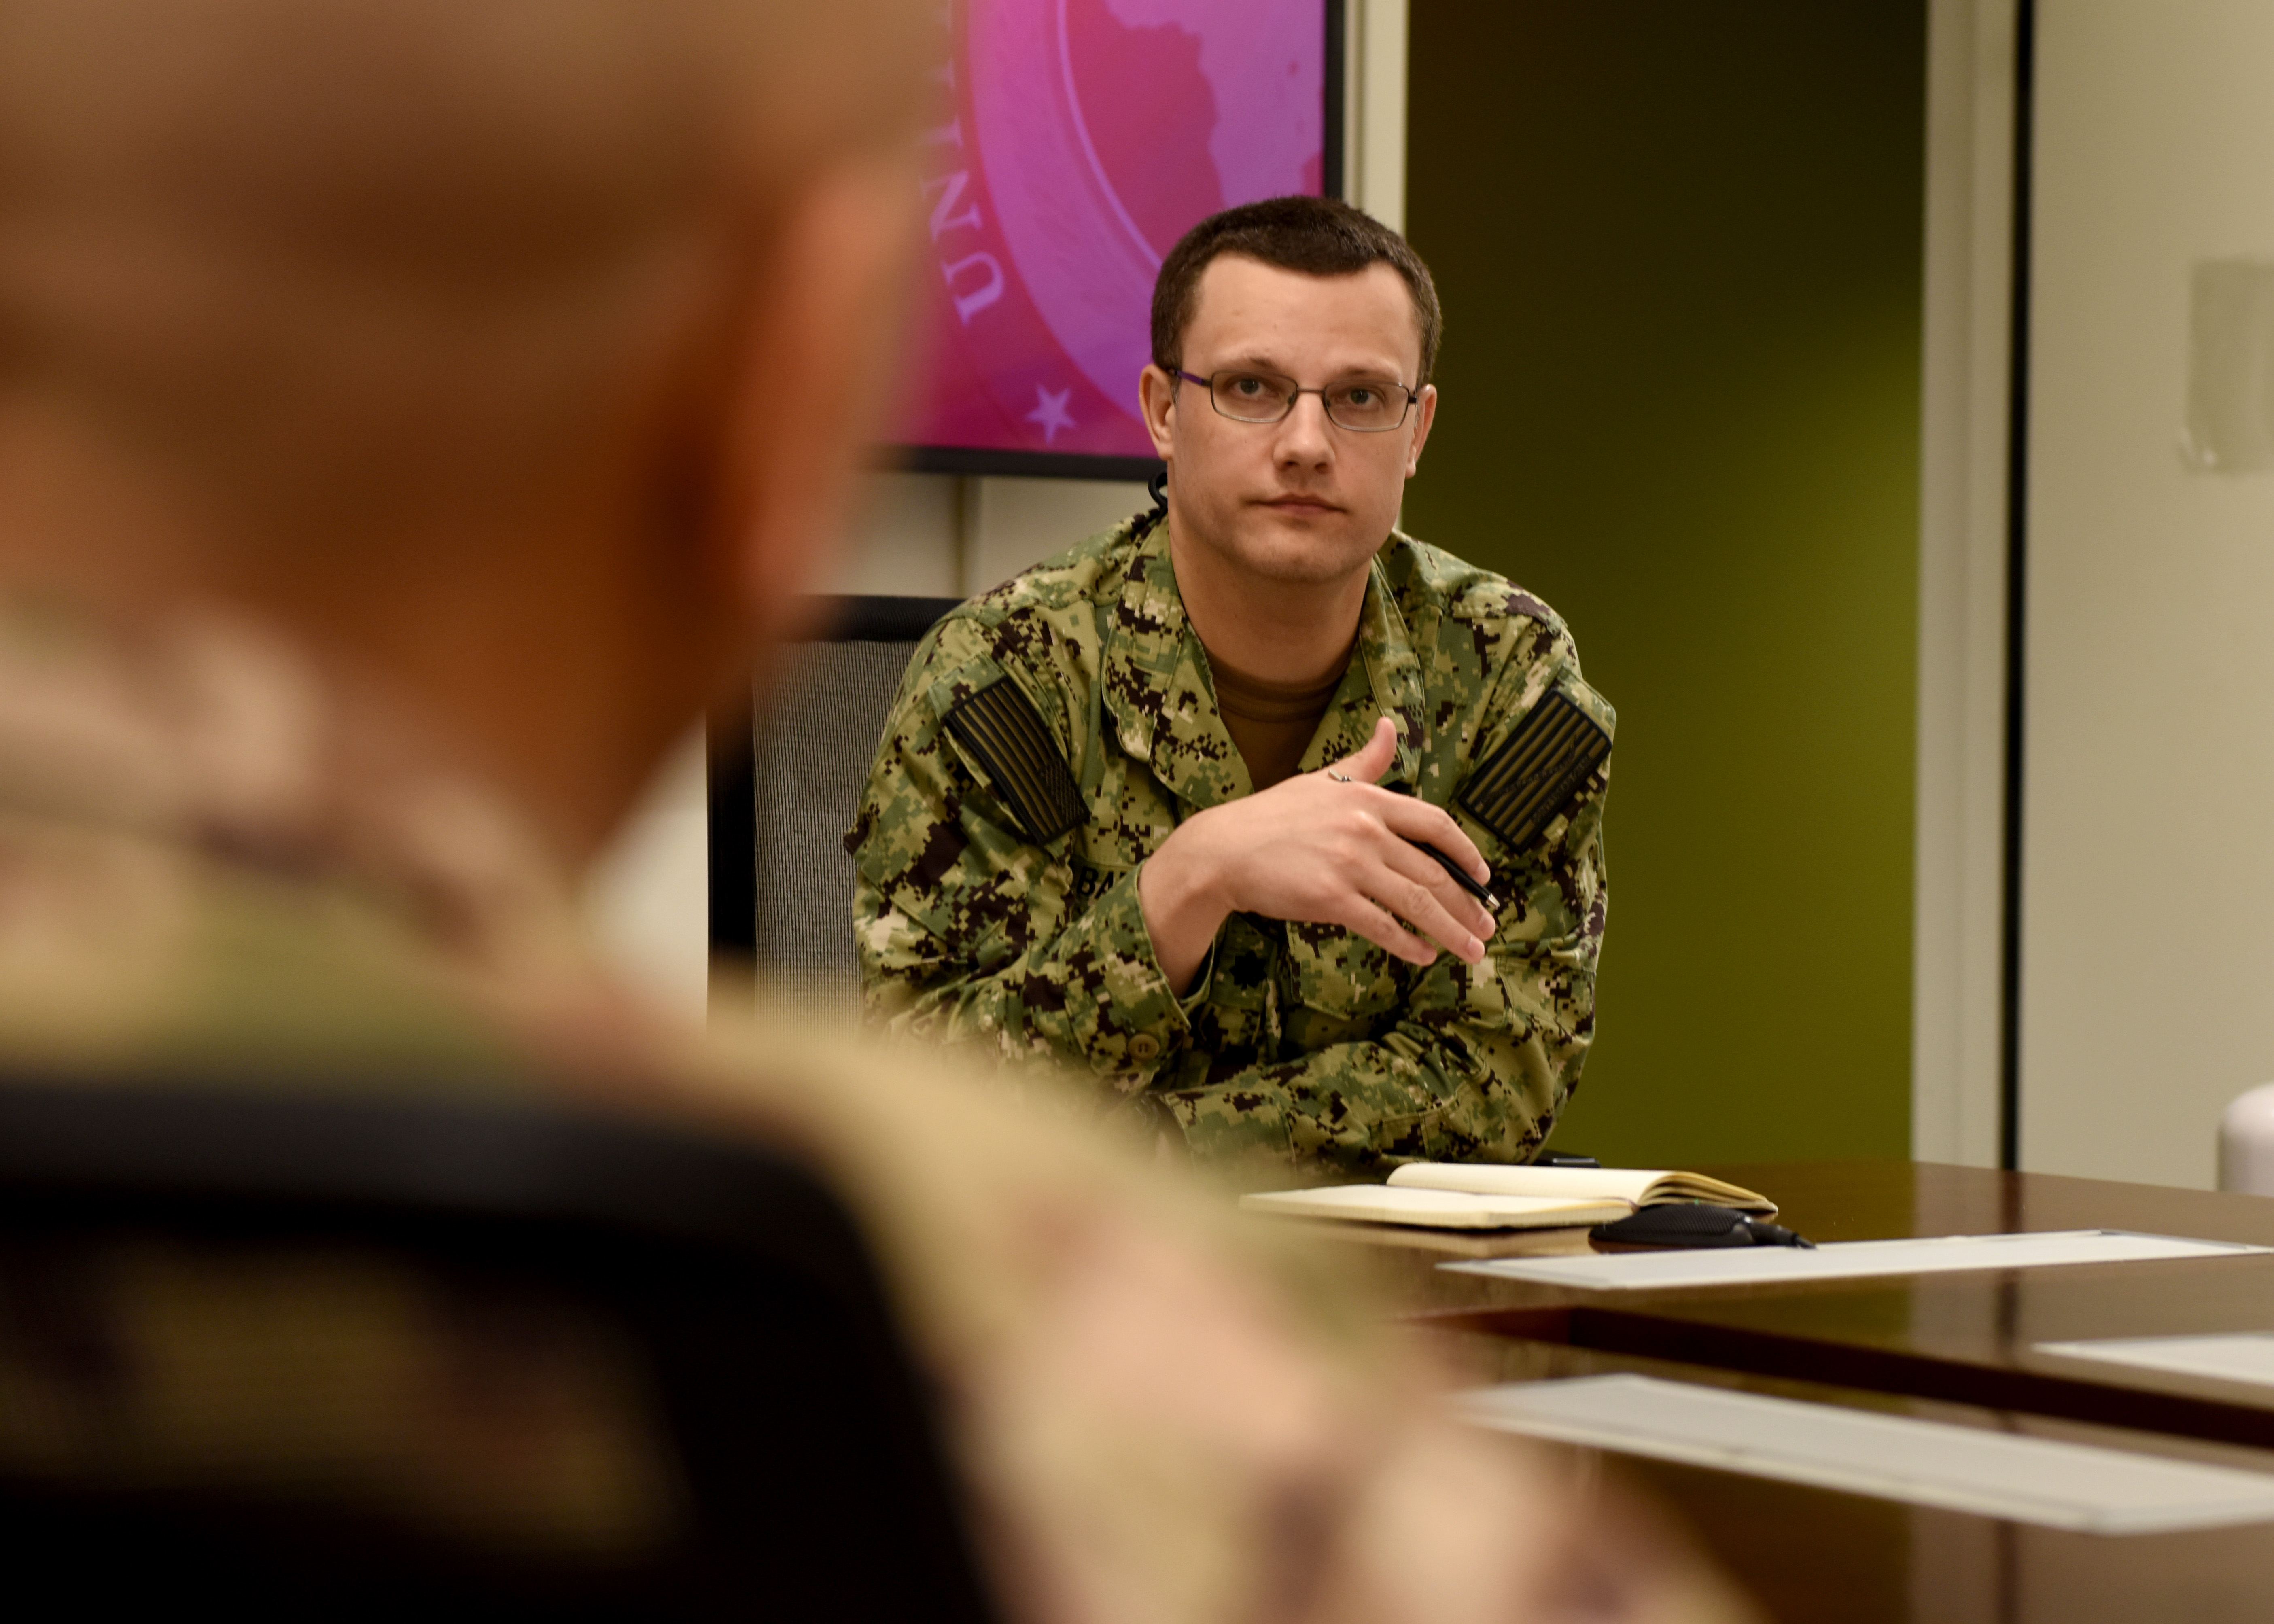 U.S. Navy Cmdr. Kevin Barnes, future operations director assigned to Combined Joint Task Force-Horn of Africa (CJTF-HOA), listens the CJTF-HOA operational planning team during a briefing for the U.S. Department of Defense's relief effort in the Republic of Mozambique and surrounding areas following Cyclone Idai at Camp Lemonnier, Djibouti, March 27, 2019. Teams from CJTF-HOA, which is leading DoD relief efforts, began immediate preparation to respond following a call for assistance from the U.S. Agency for International Development's Disaster Assistance Response Team. (U.S. Air Force photo by Staff Sgt. Franklin R. Ramos)